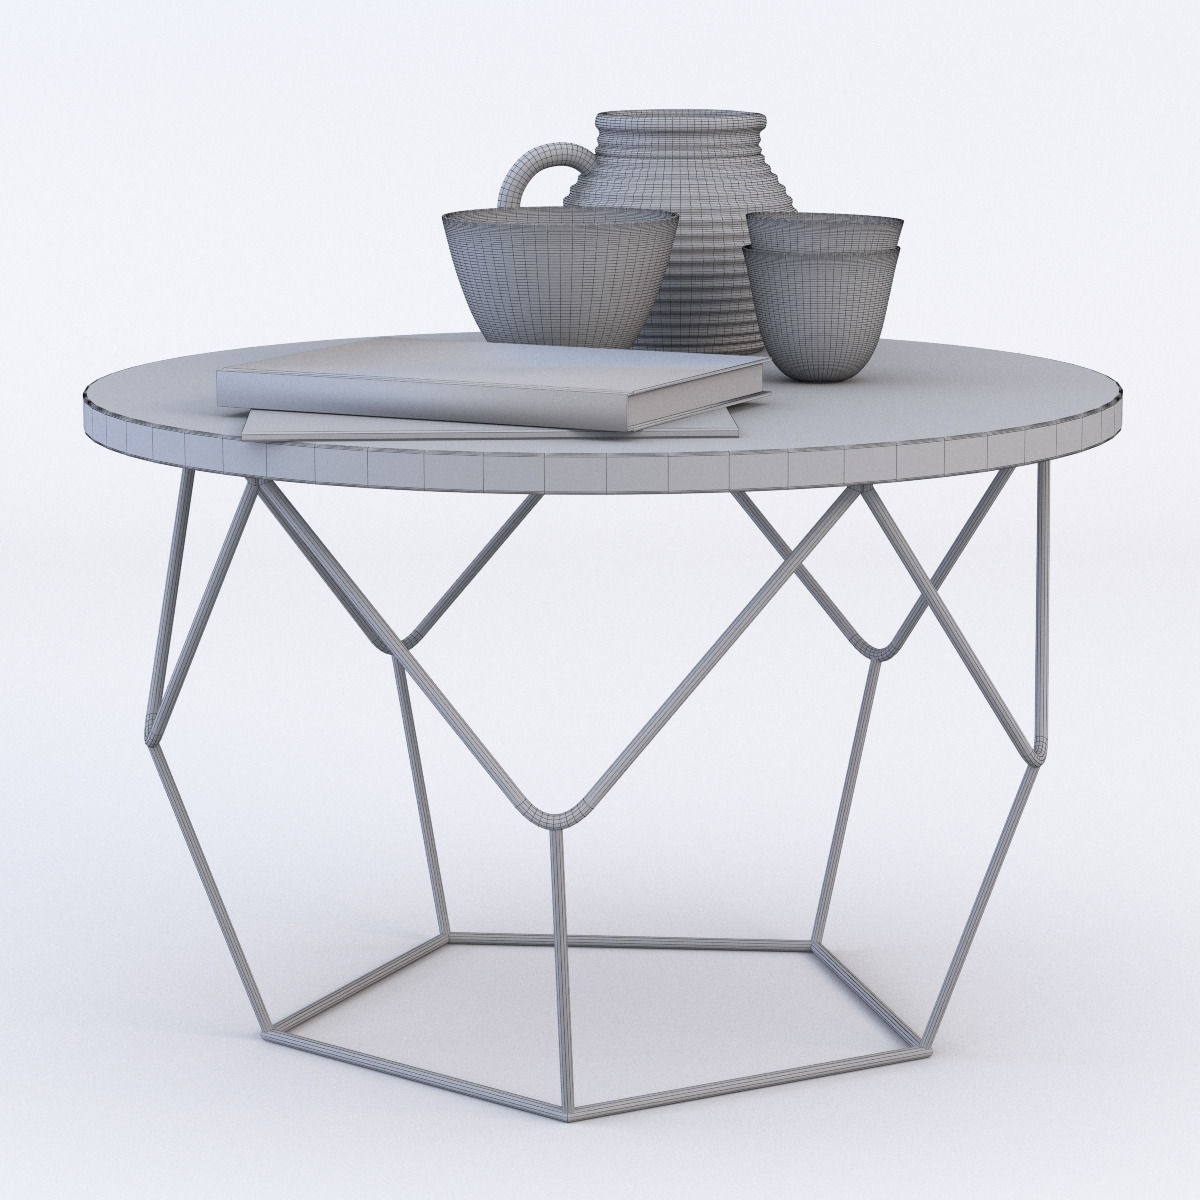 West elm Origami Coffee Table 3D model CGTrader